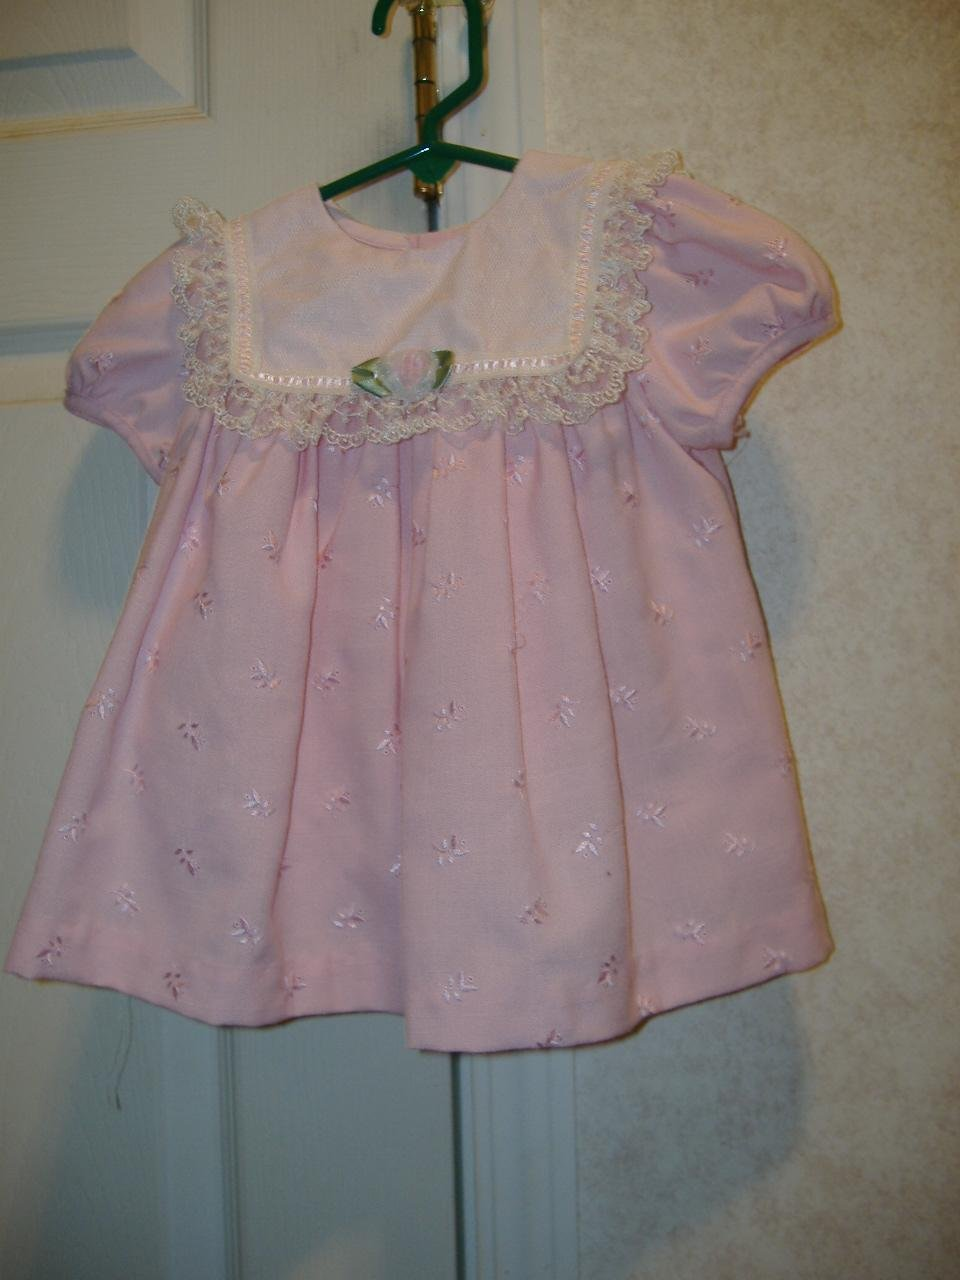 2 Piece Infant Girl Set By Baby Togs   Size 6 -9 Months